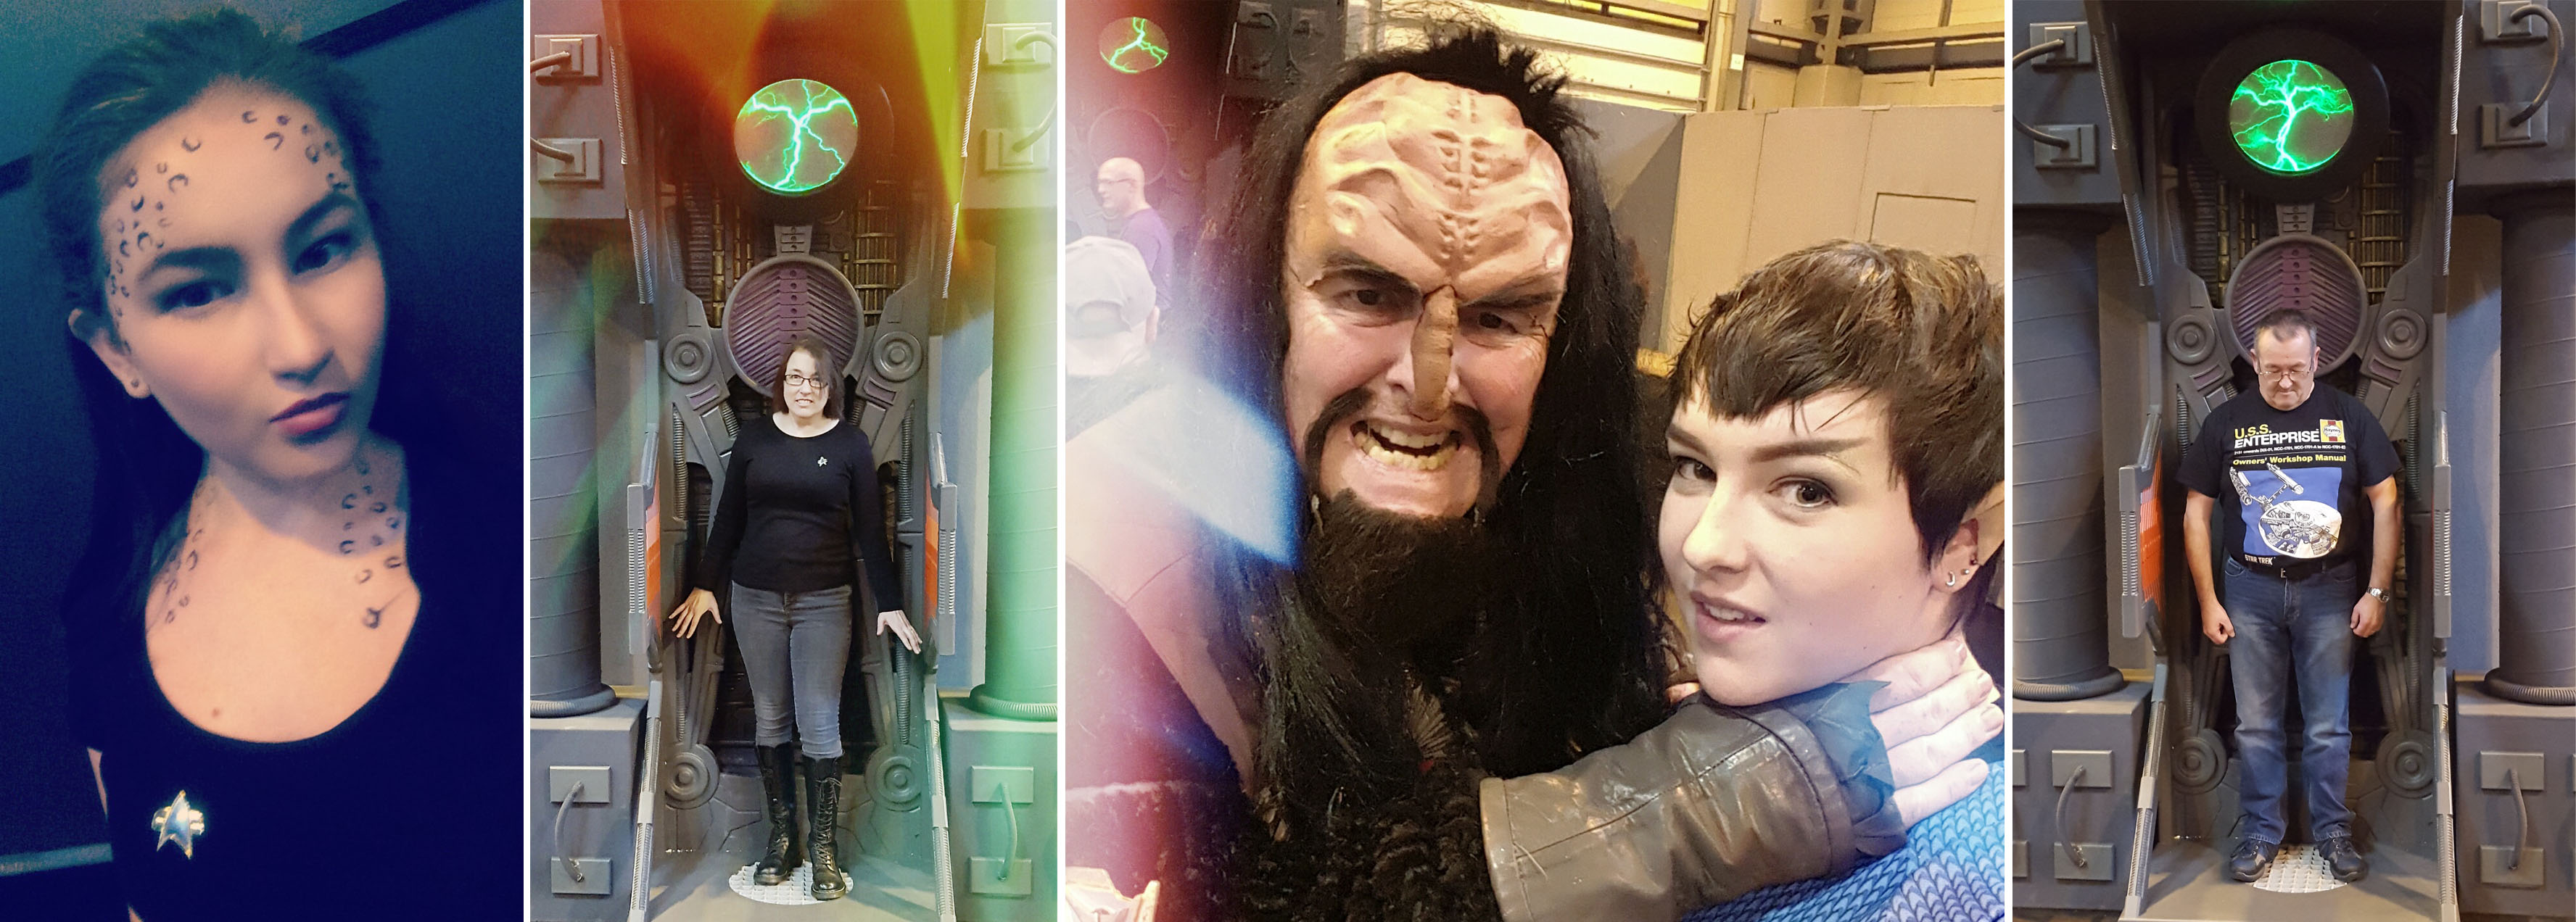 jadzia-klingon-borg-destination-star-trek-50th-anniversary-oct-2016